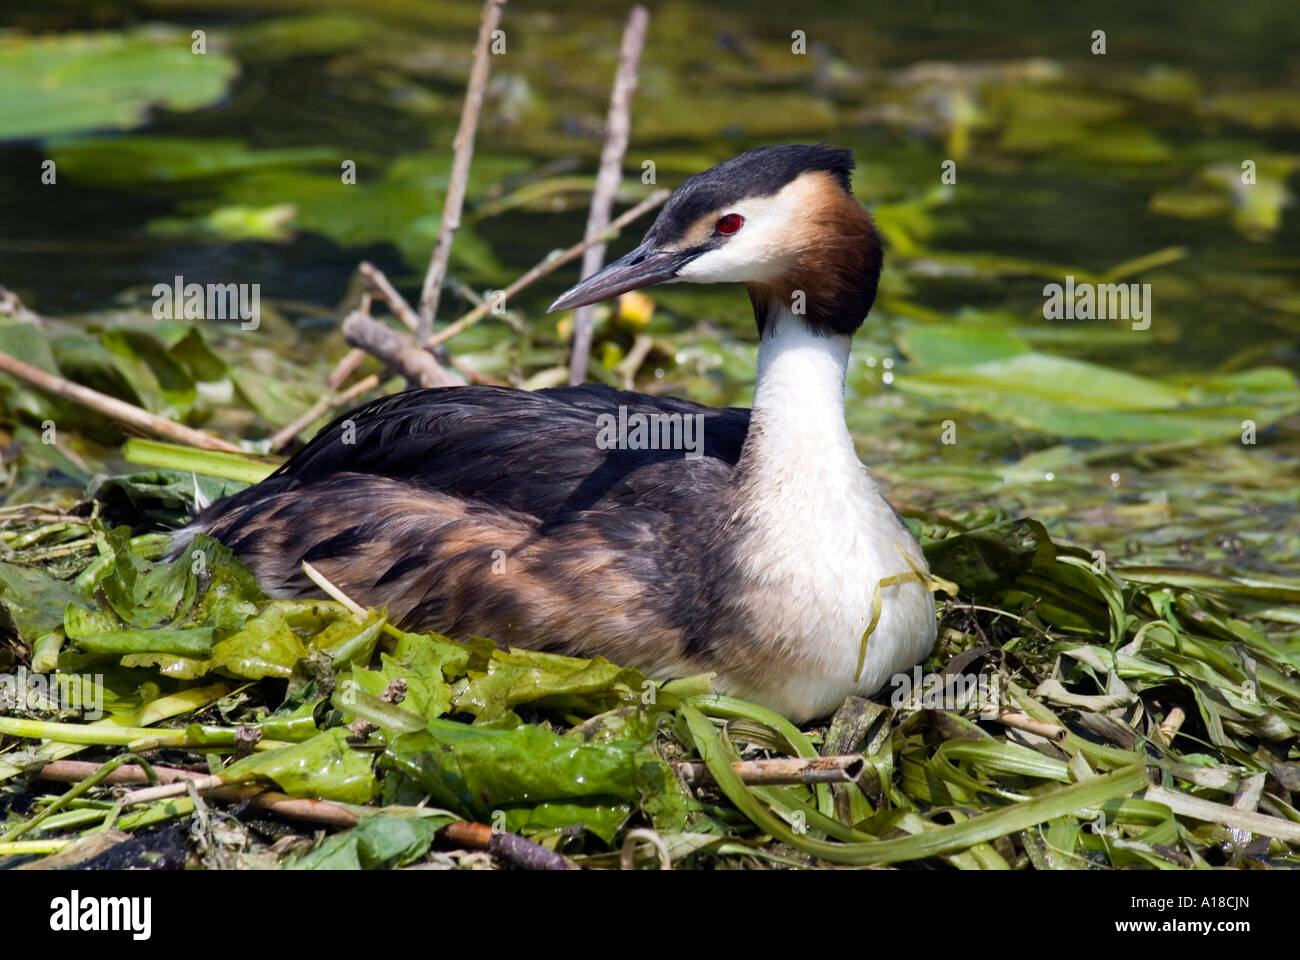 Great Crested Grebe on nest. - Stock Image